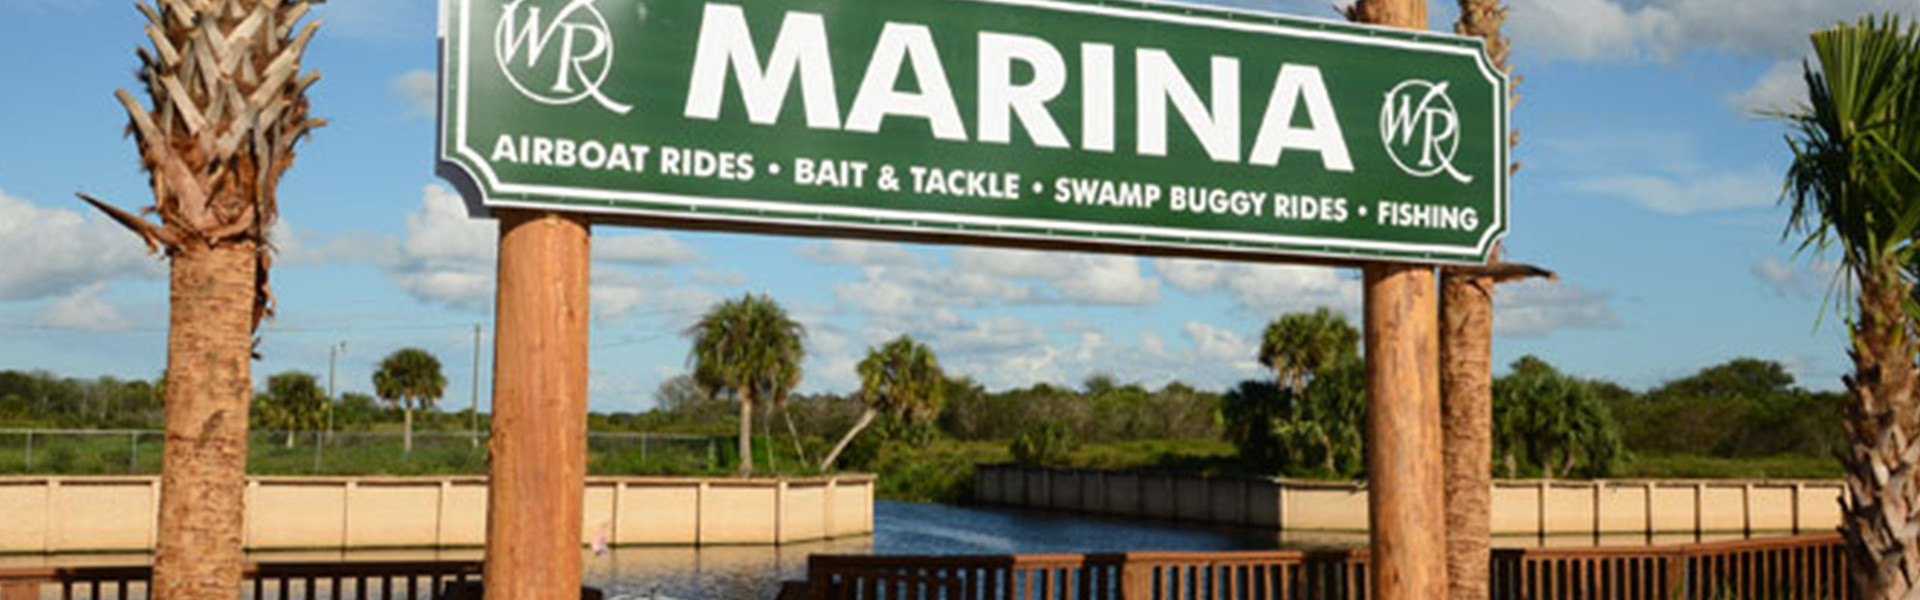 Find your adventure with Airboat Rides, Rodeos, Horseback Rides, Archery, and More!   Westgate River Ranch Resort & Rodeo